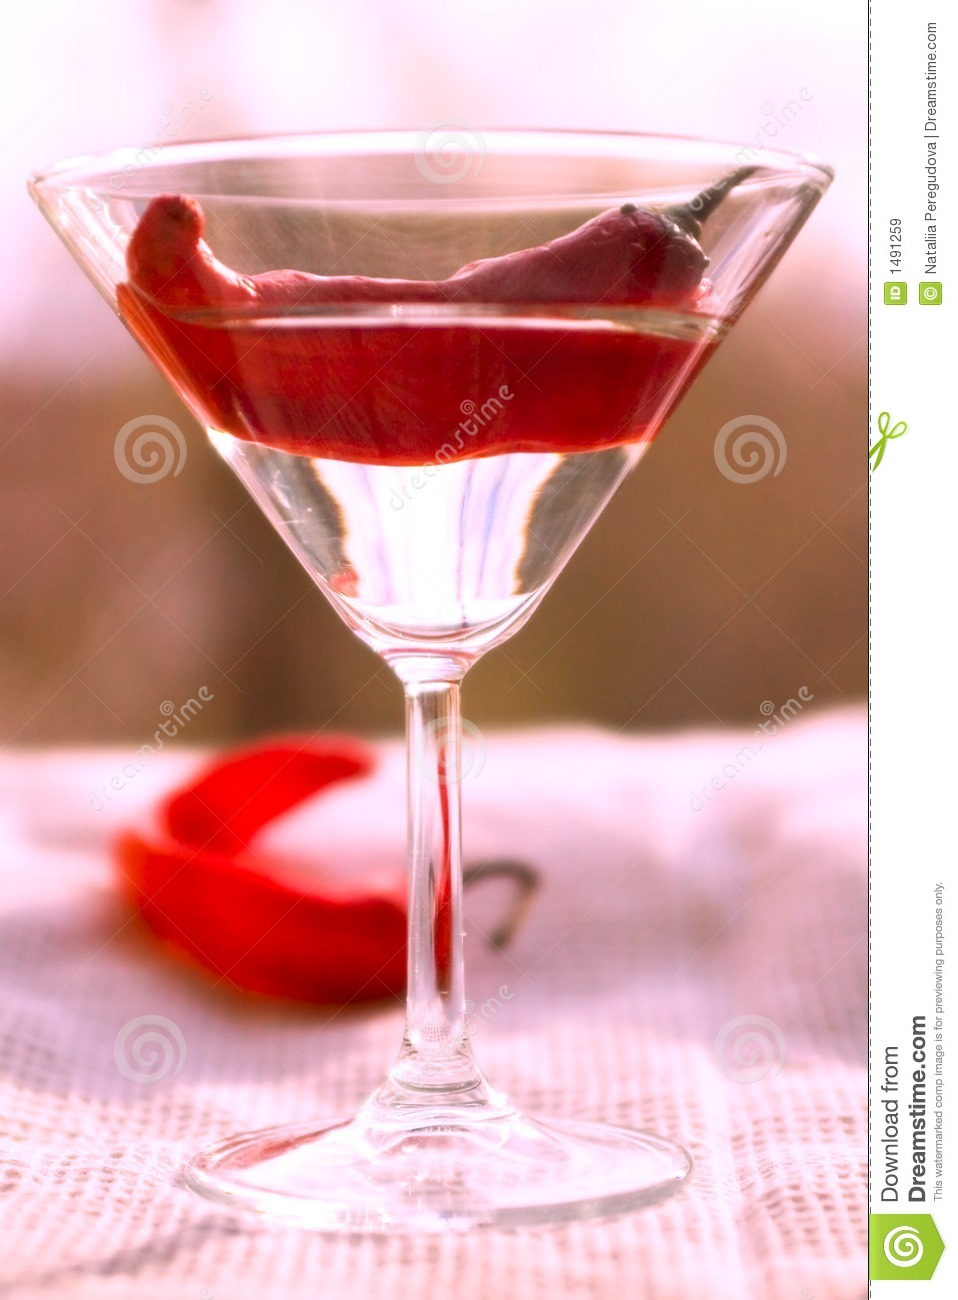 ... spa red chile martini chocolate chili martini martini with a red chili